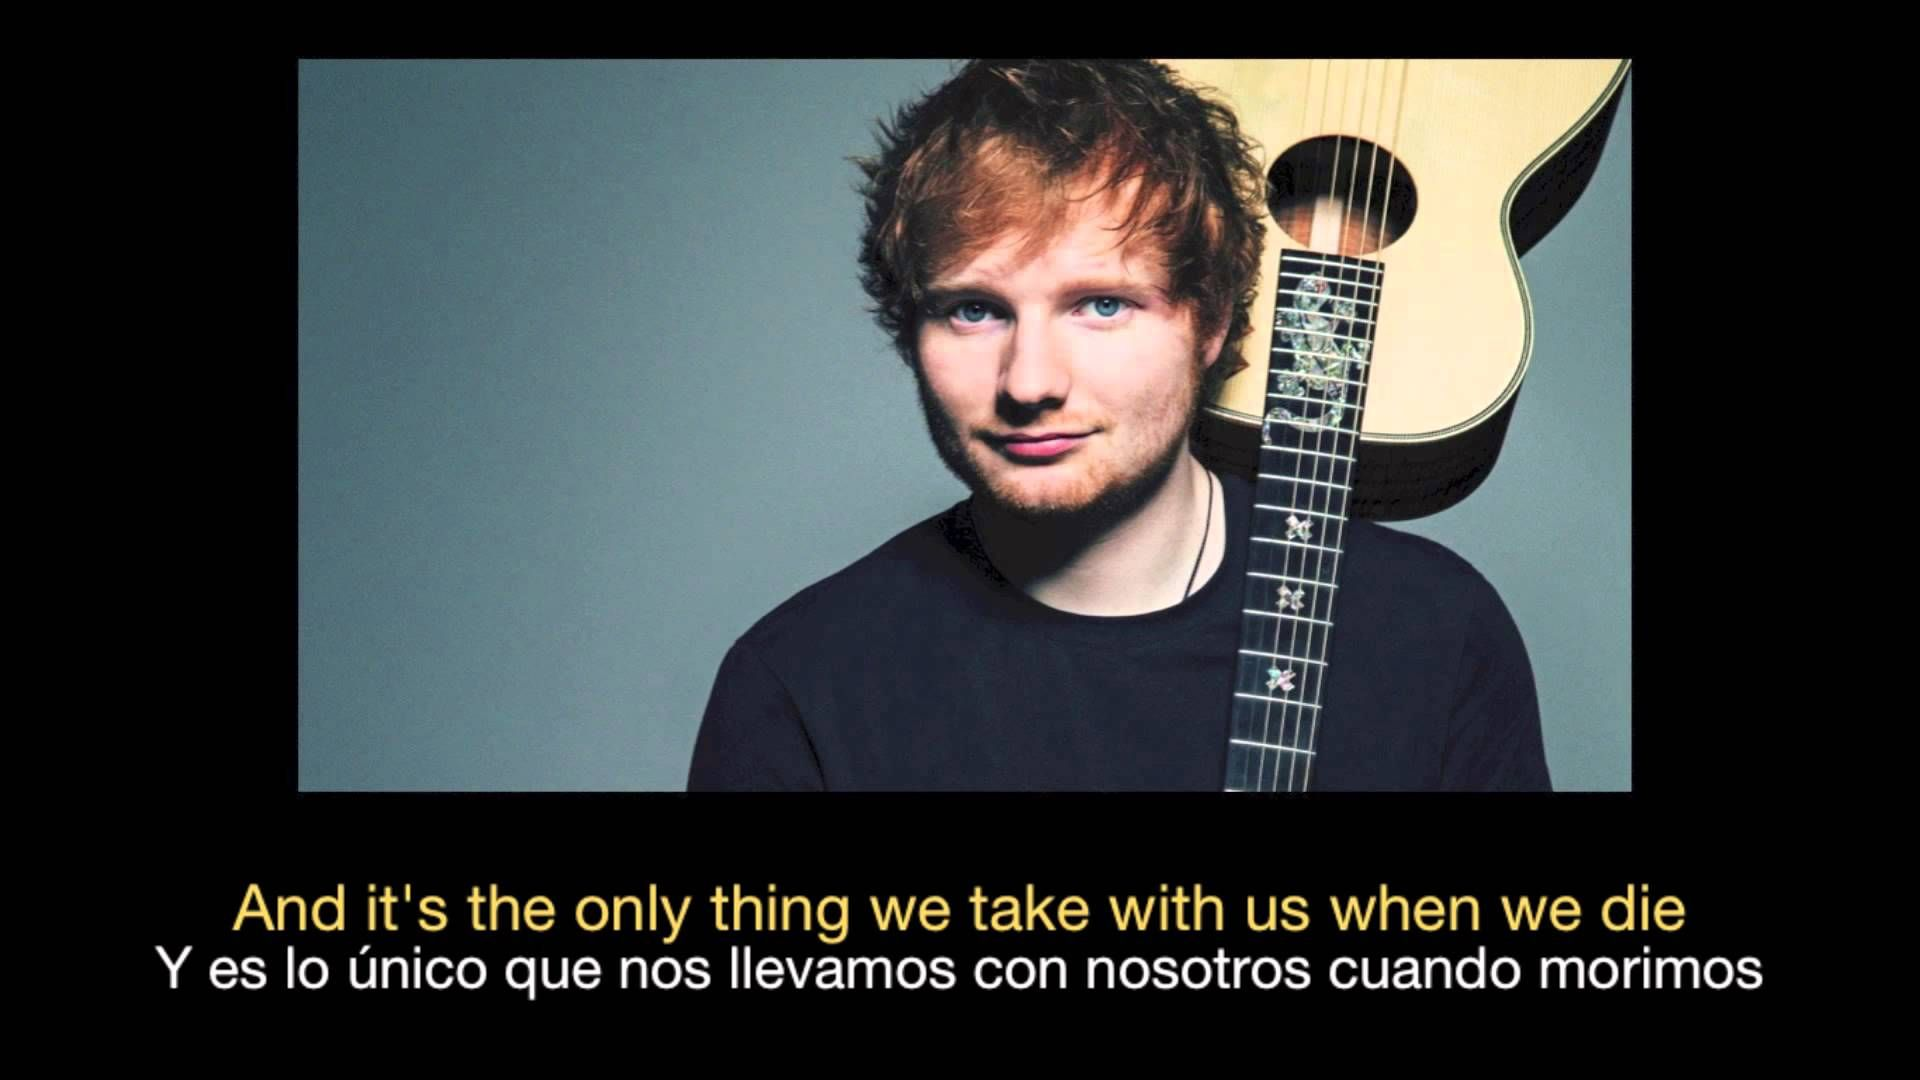 Ed Sheeran Photograph Hd Sub Español Ingles Ed Sheeran Photograph Lyrics Ed Sheeran Lyrics